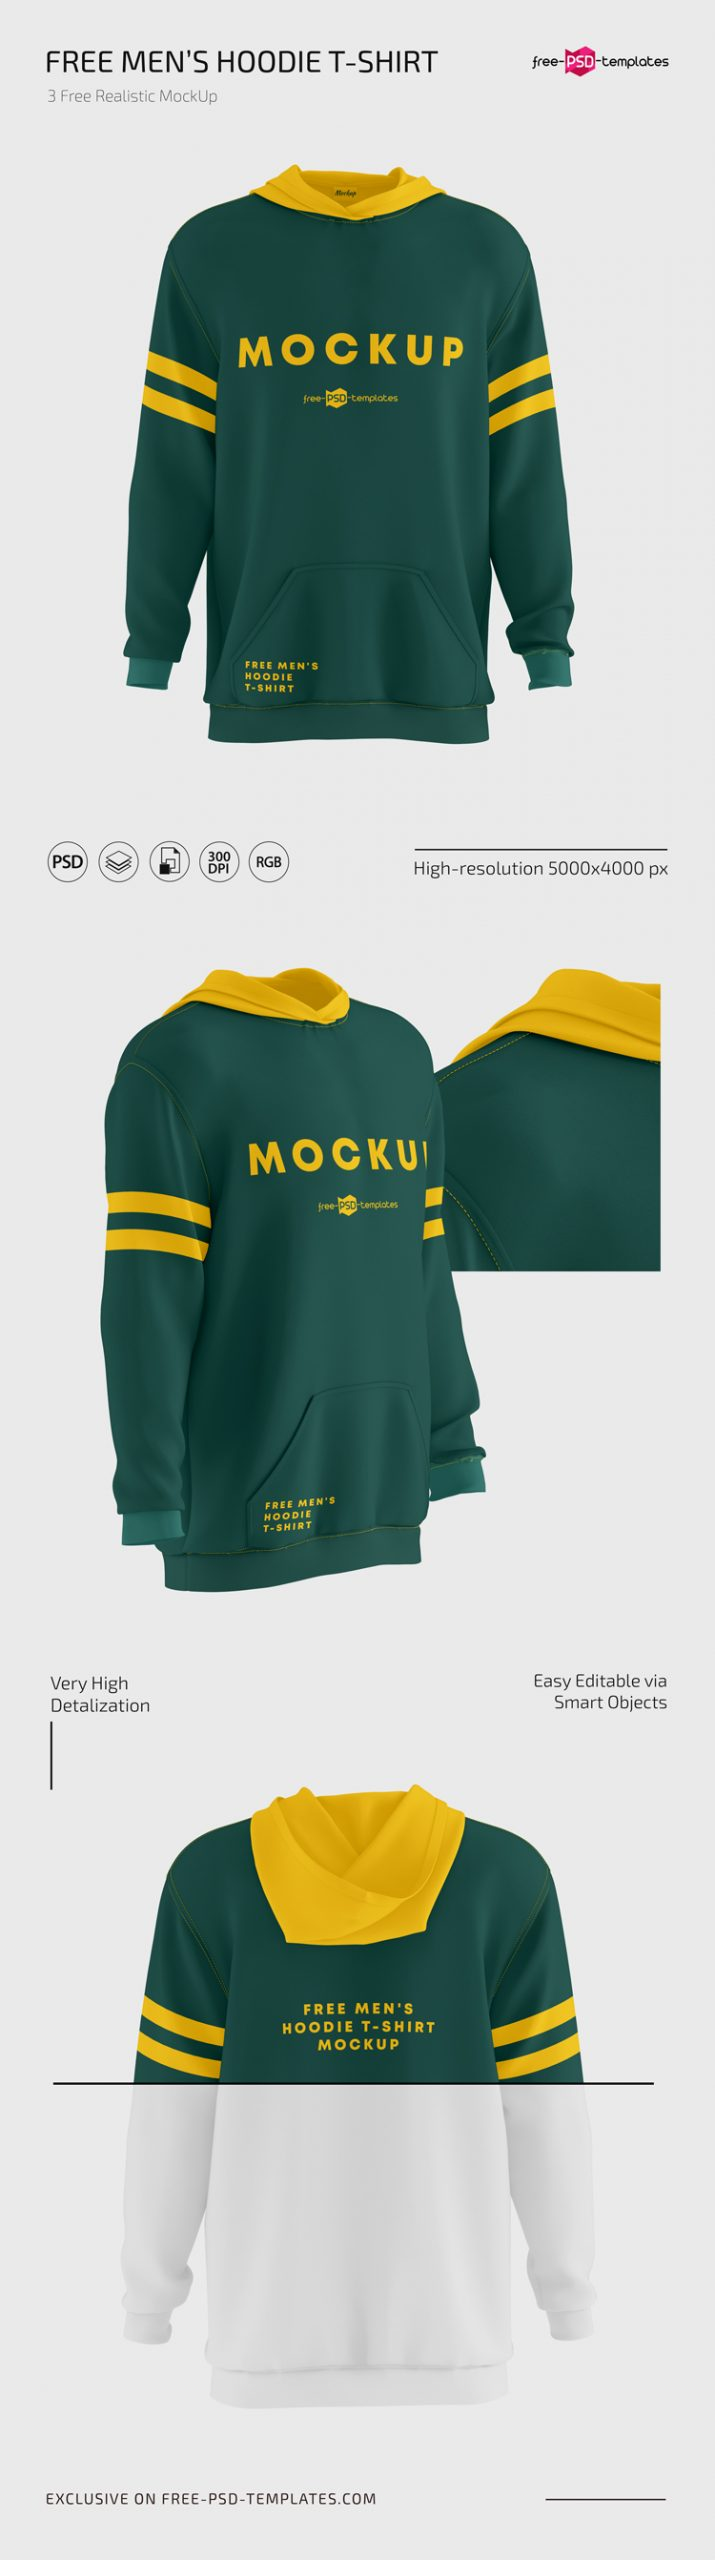 Download Free Men's Hoodie T-shirt Mockups in PSD | Free PSD Templates